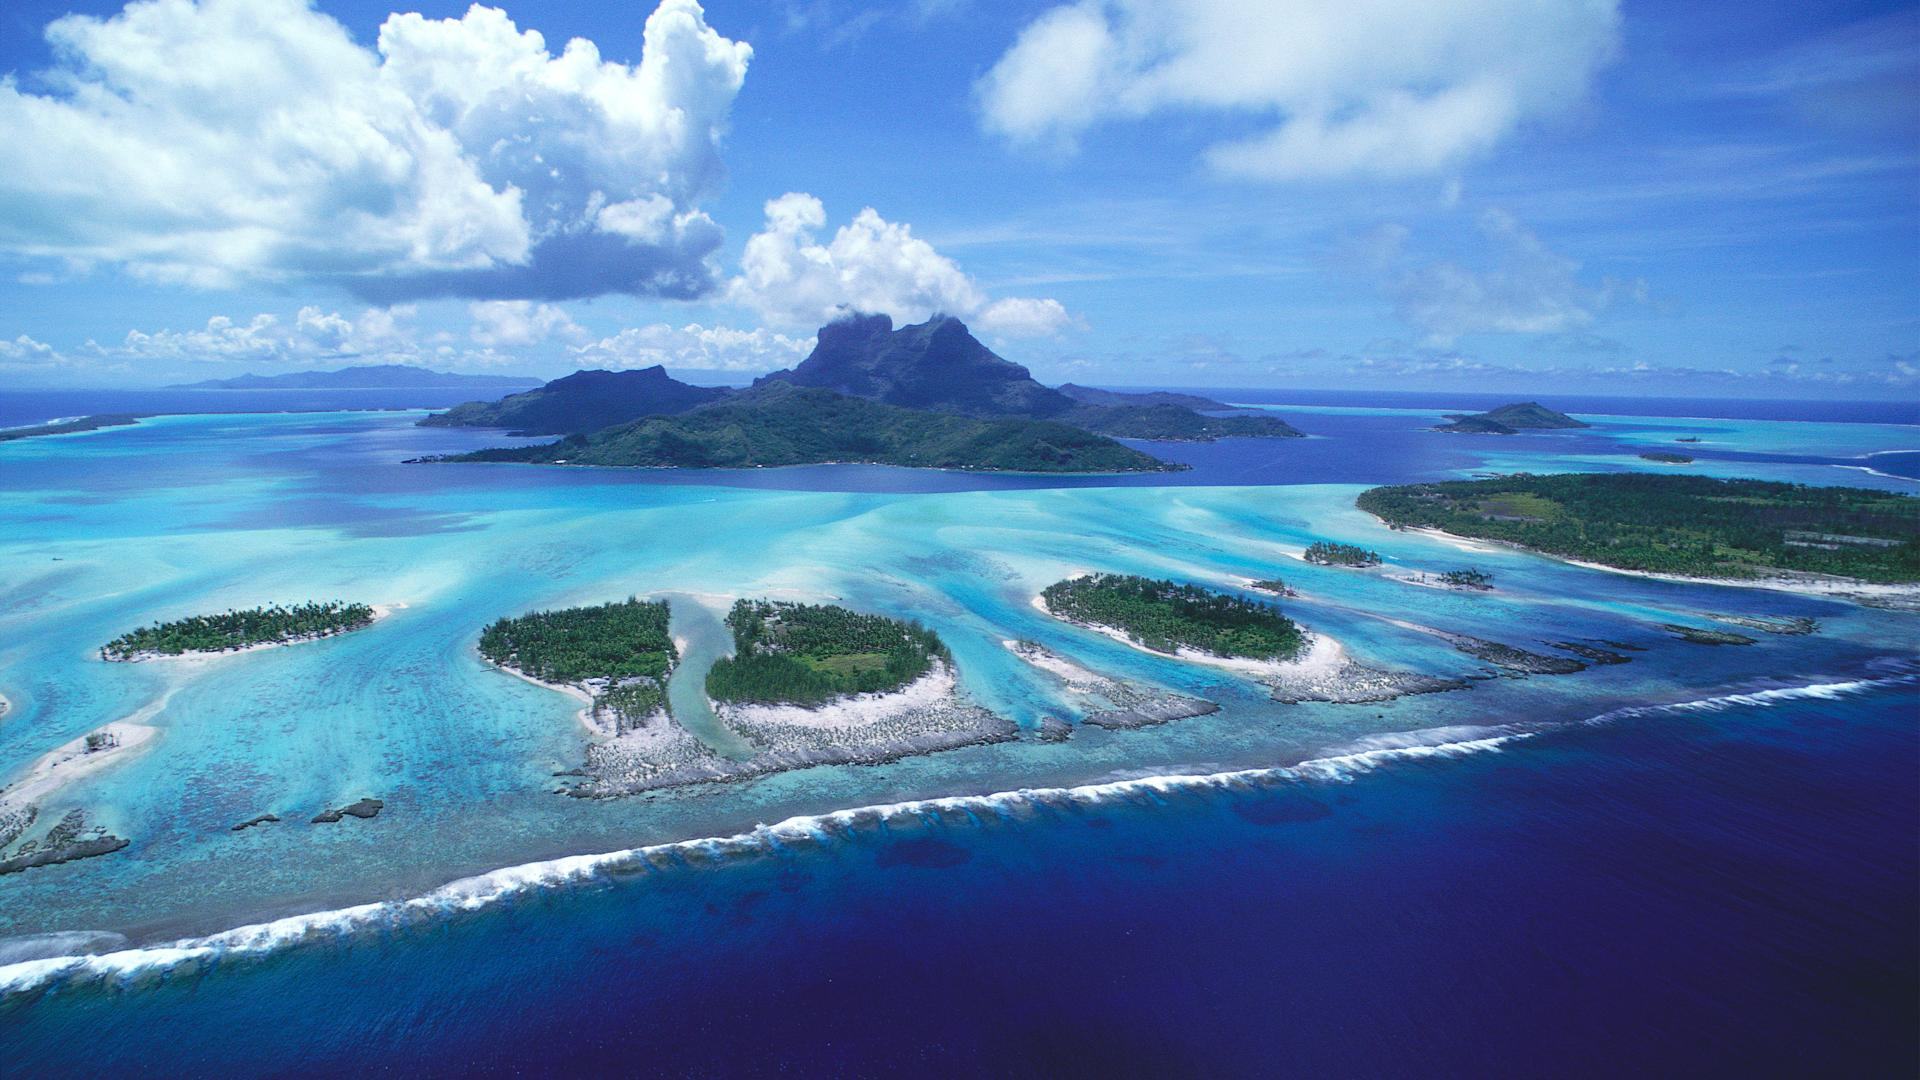 french-polynesia-bora-bora-islands-aerial-view